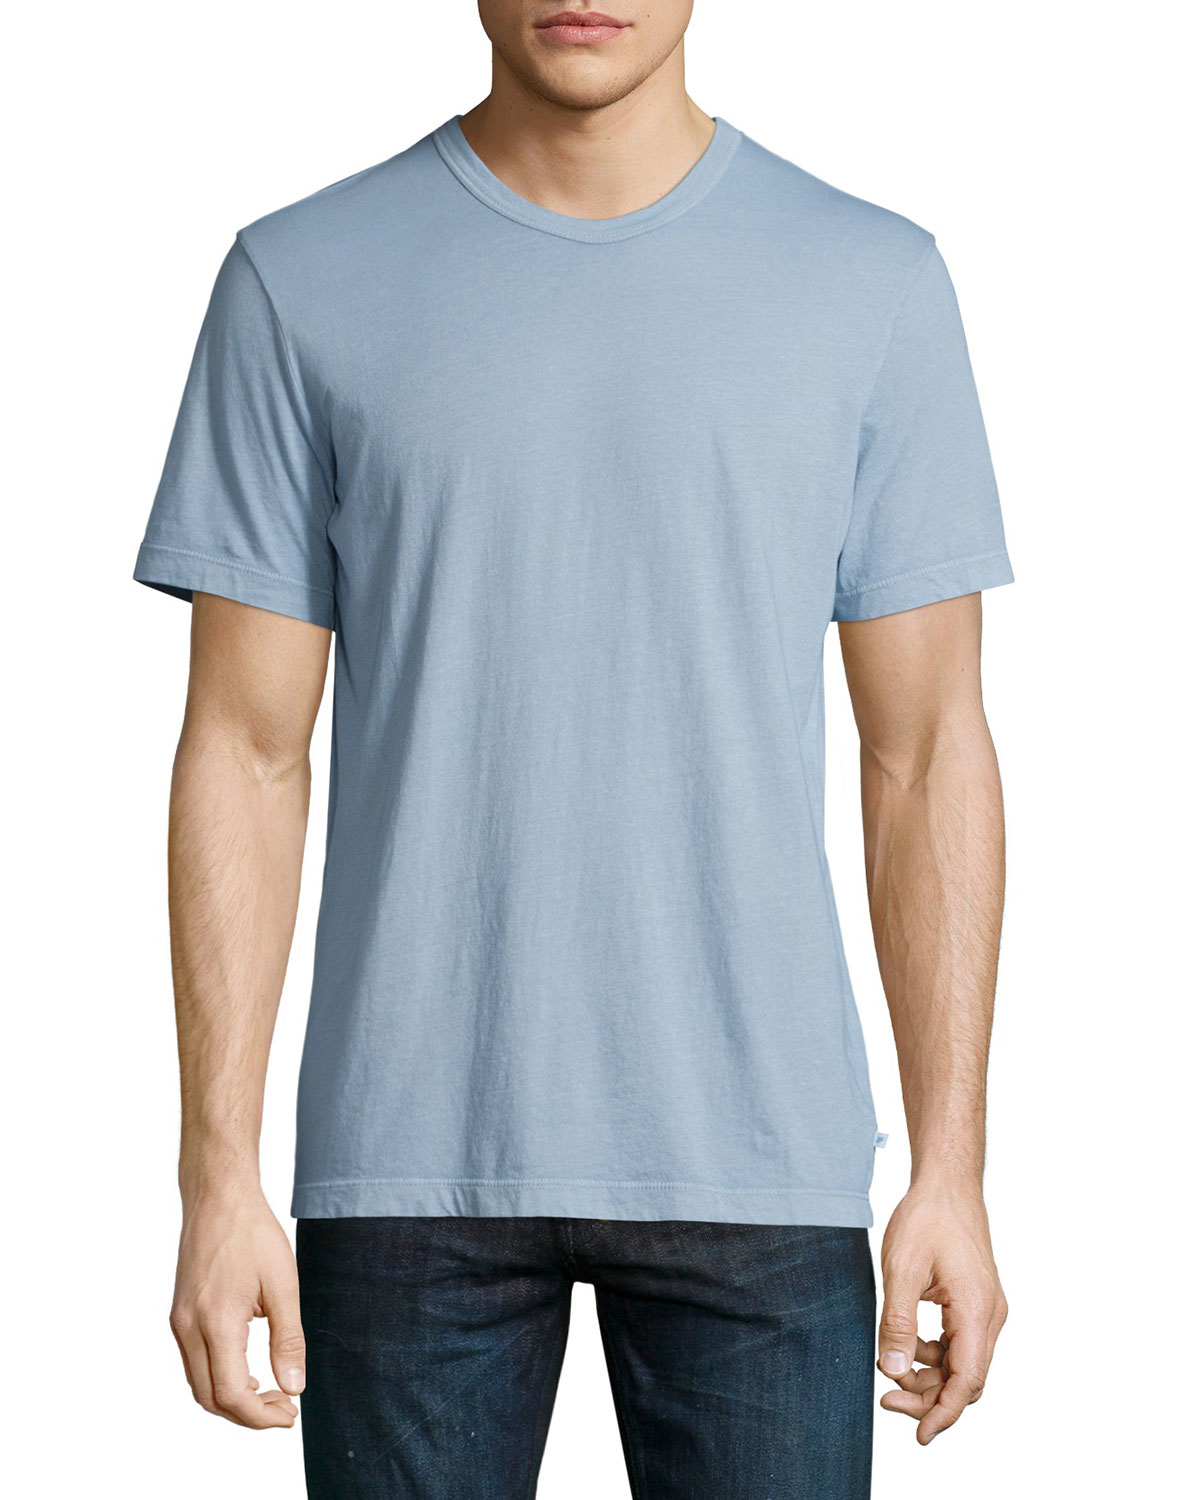 d5f84f65e17 James Perse Crew-Neck Cotton T-Shirt in Blue for Men - Lyst